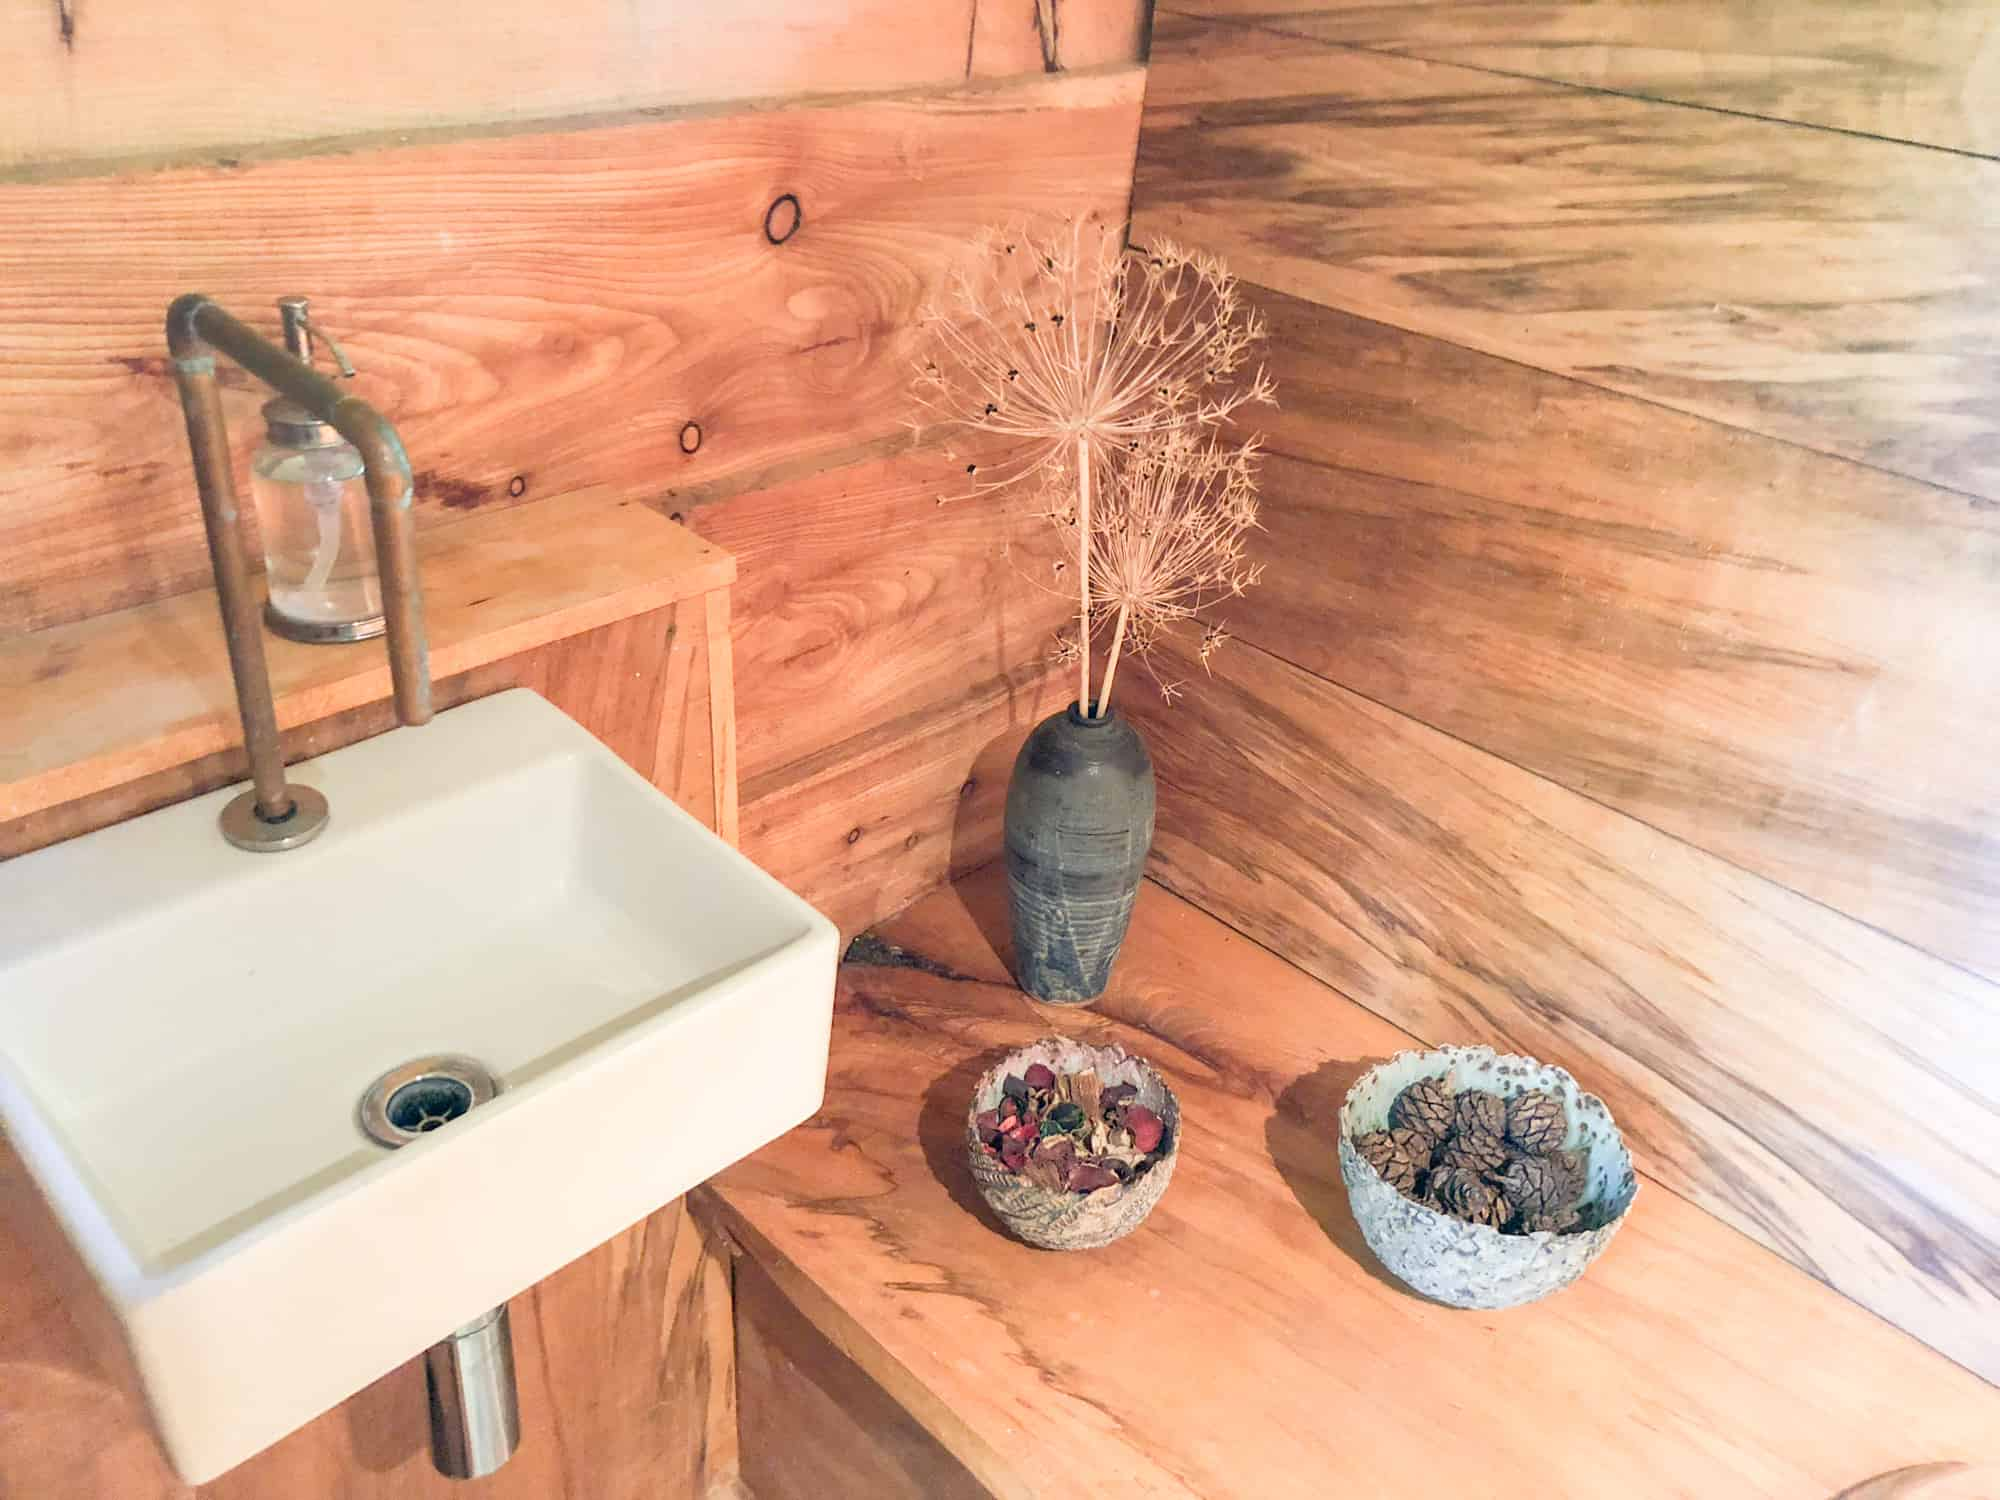 Glamping packing list article - running water and soap standard for glamping